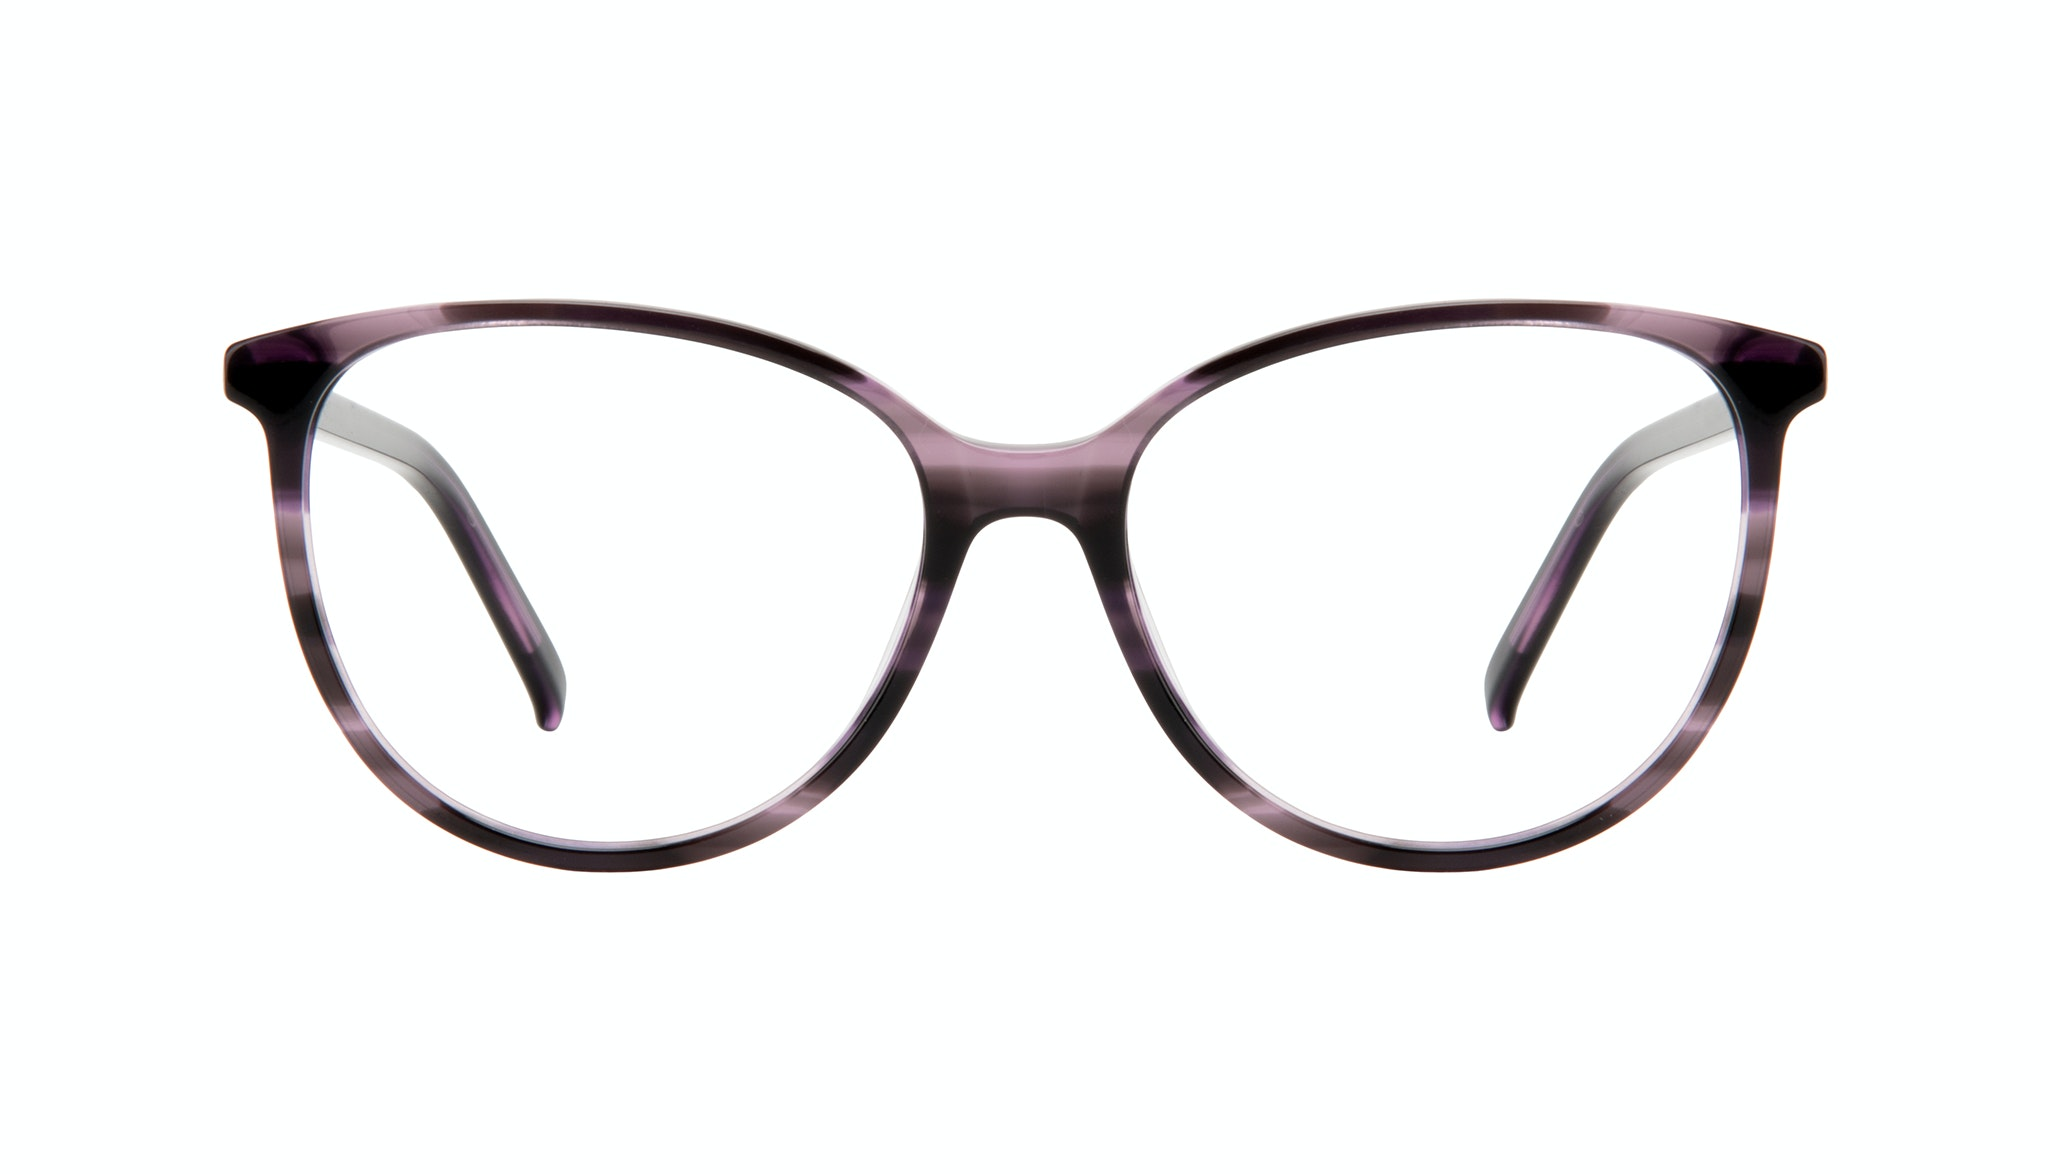 Affordable Fashion Glasses Round Eyeglasses Women Imagine Leopard Front